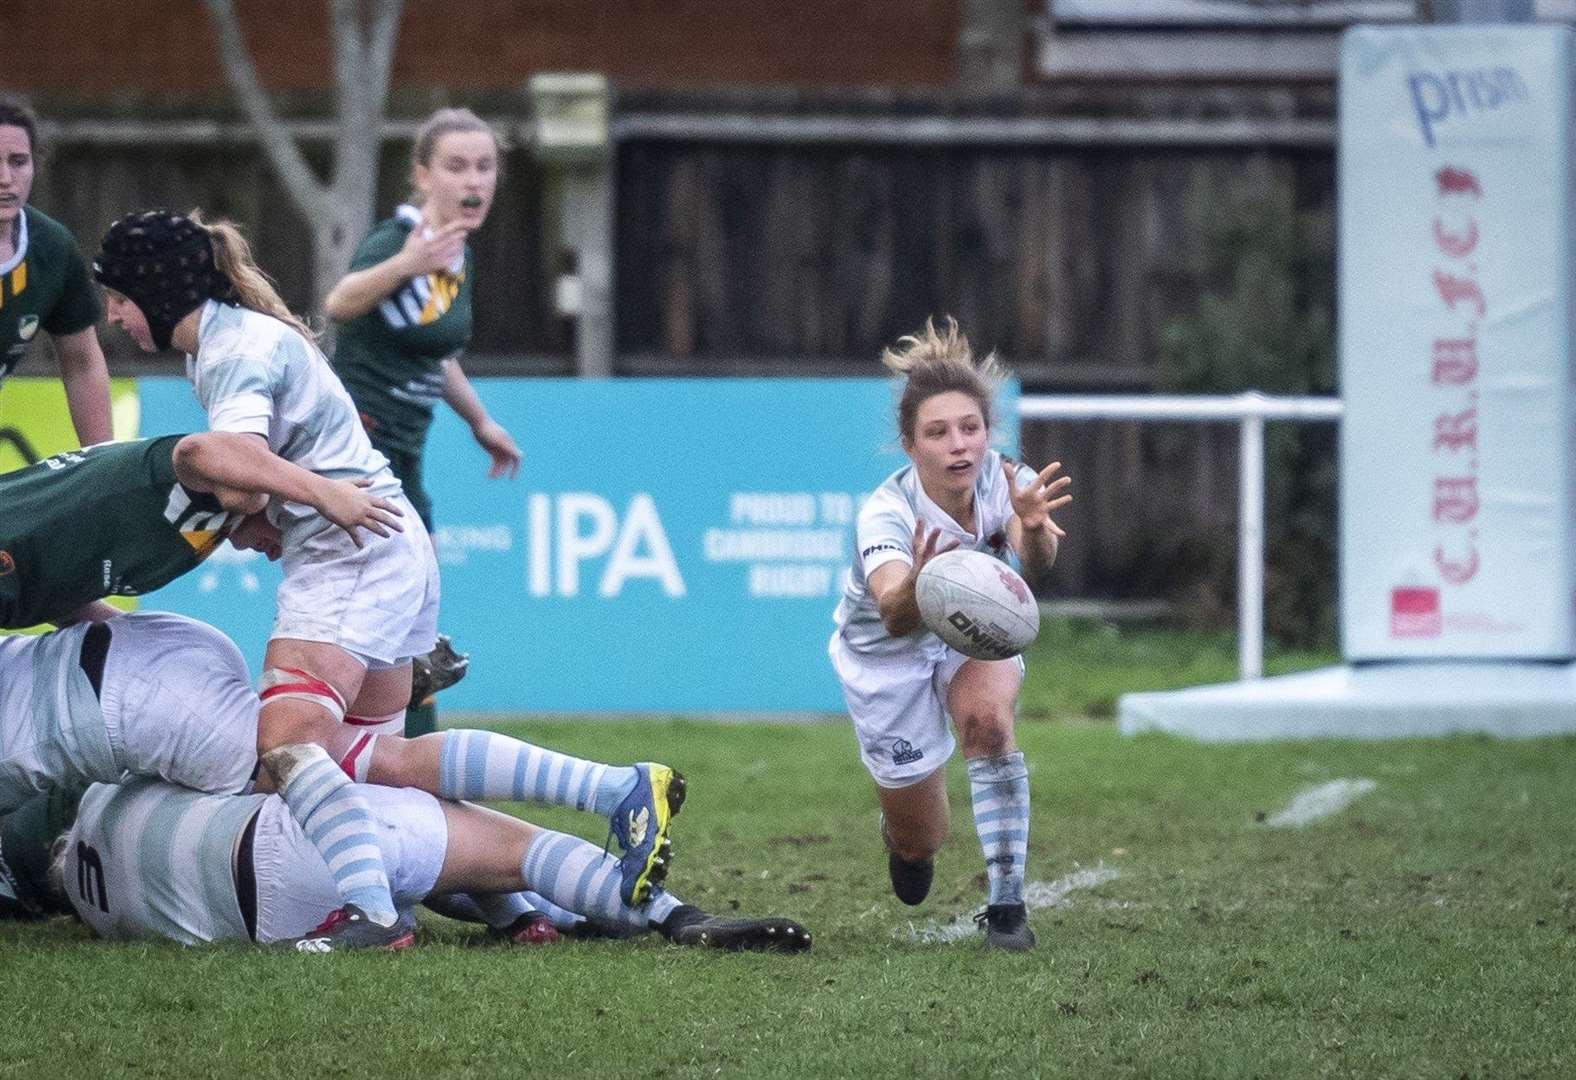 Kate Marks bids for success with Cambridge University in 30th Women's Varsity Match